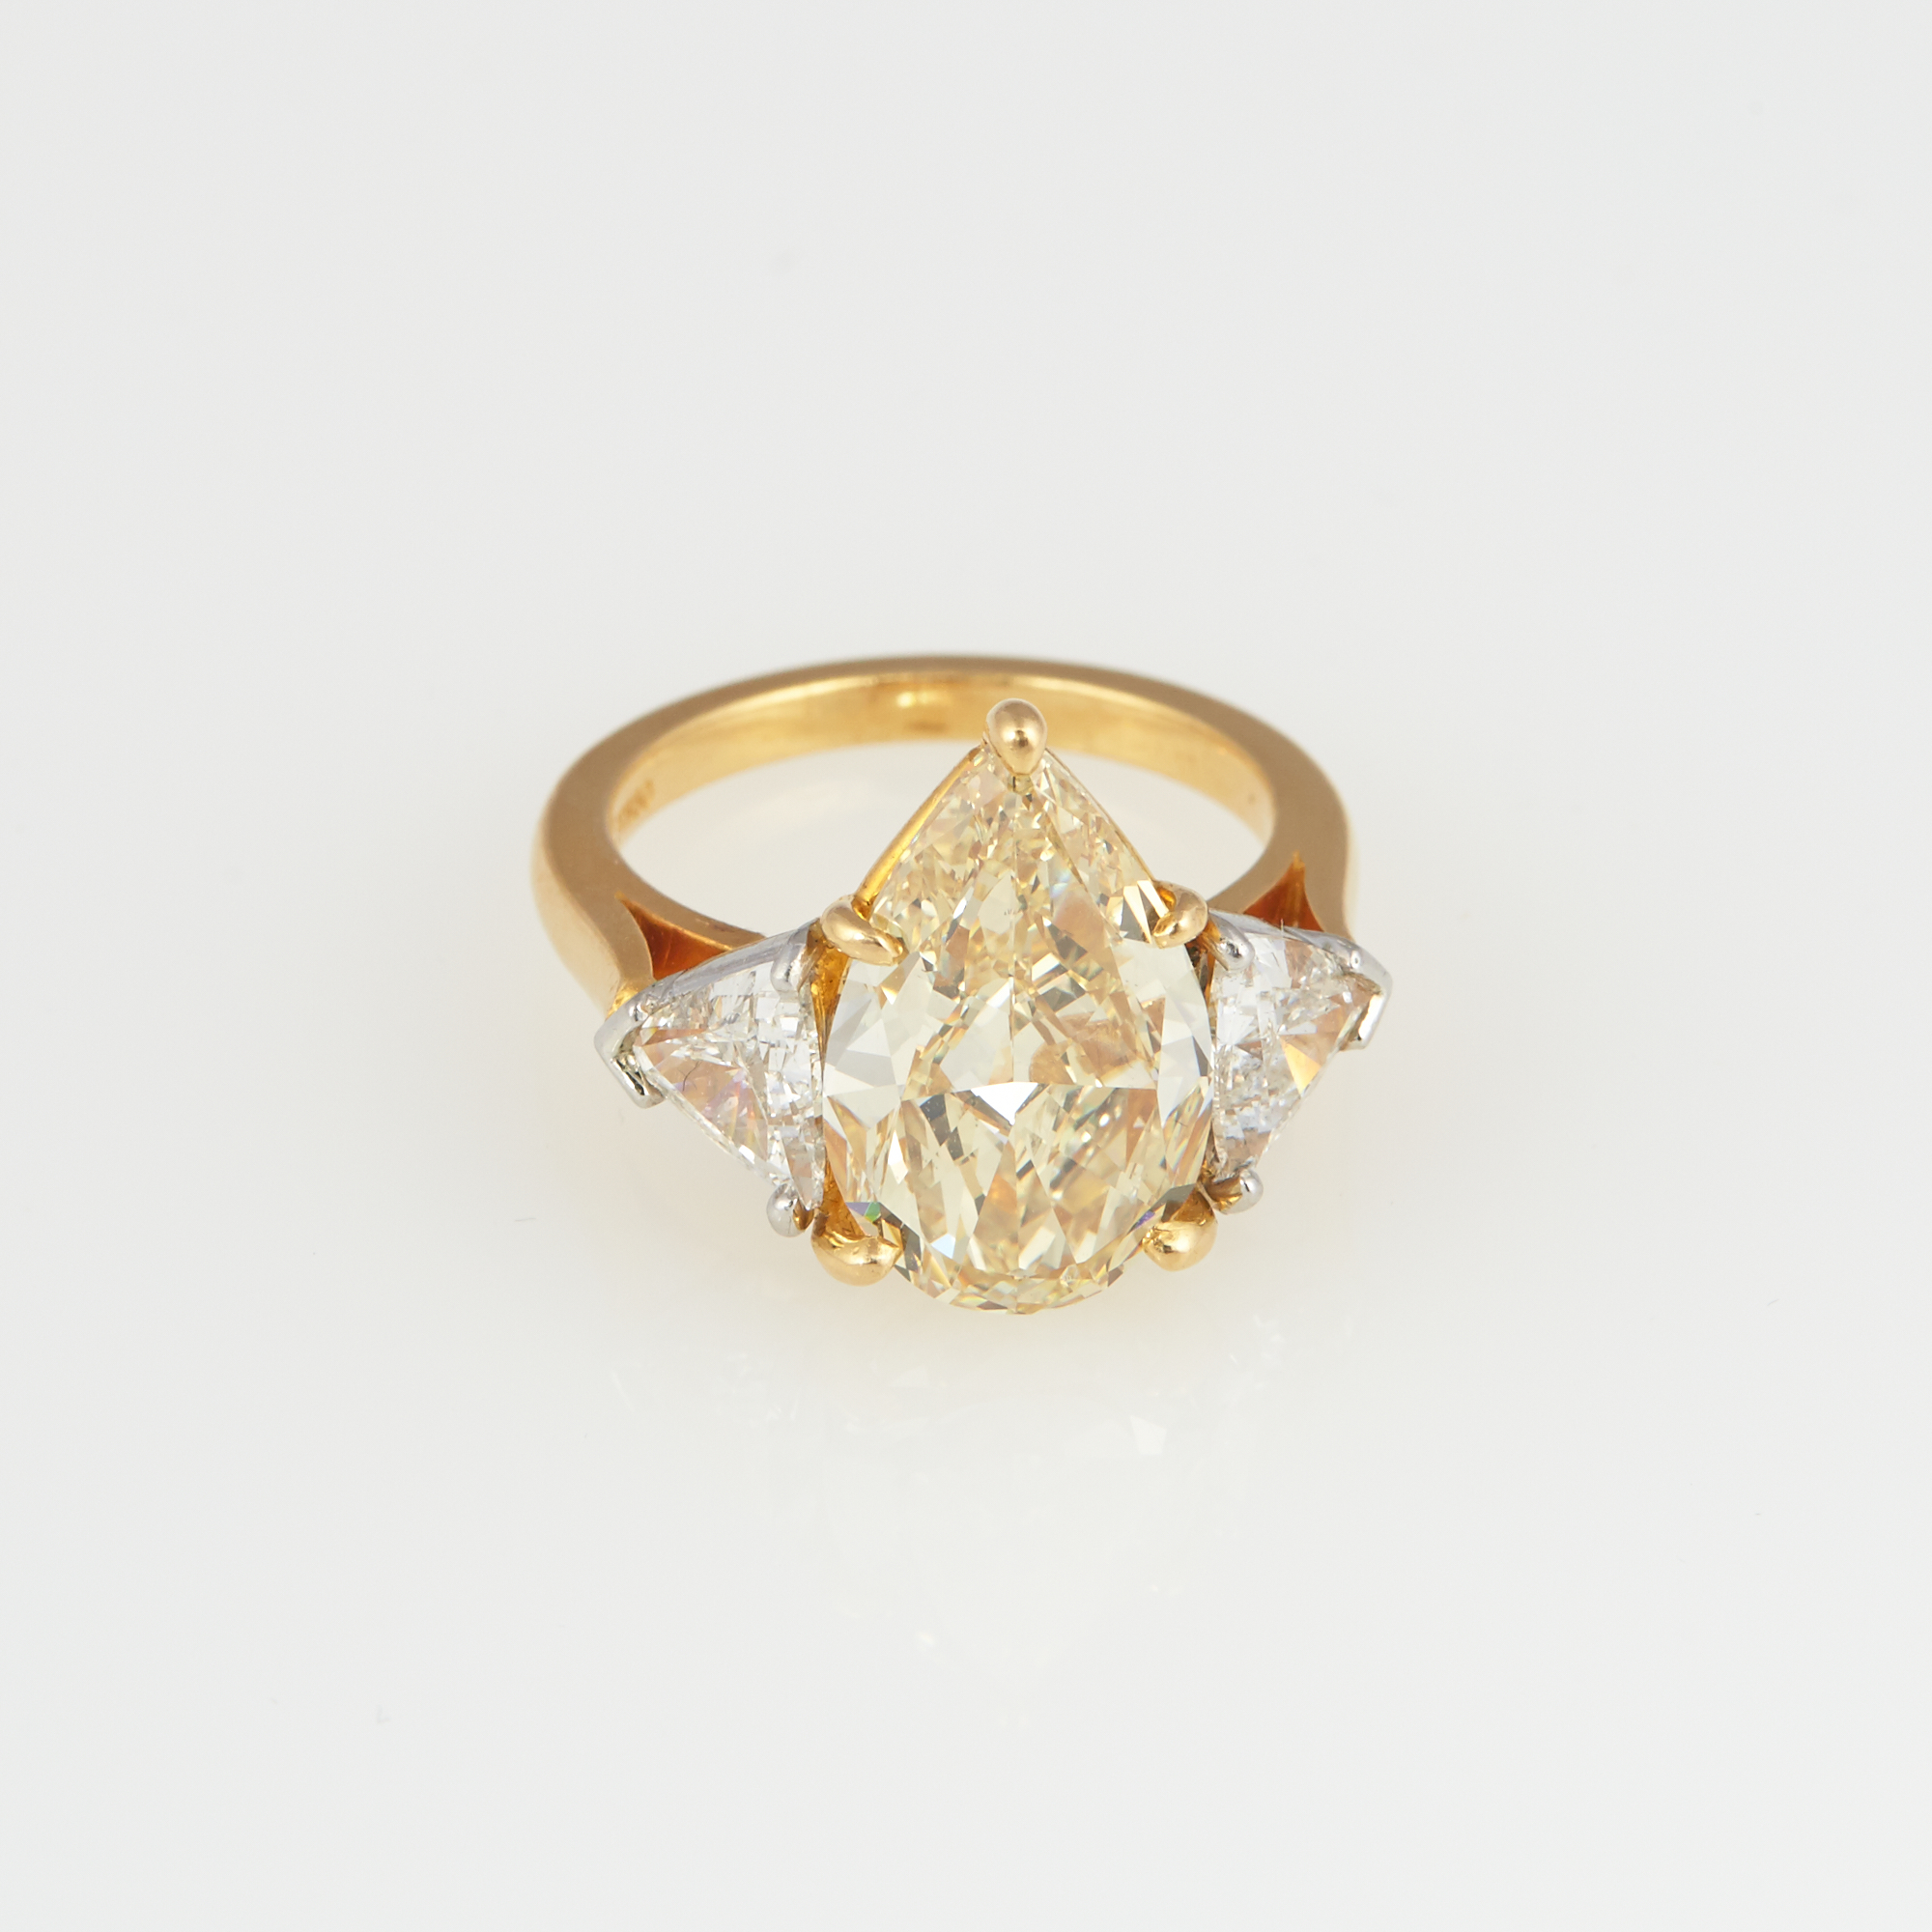 Lot image - Diamond Engagement Ring, 3 diamonds, center stone about 5.12 cts., with GIA report